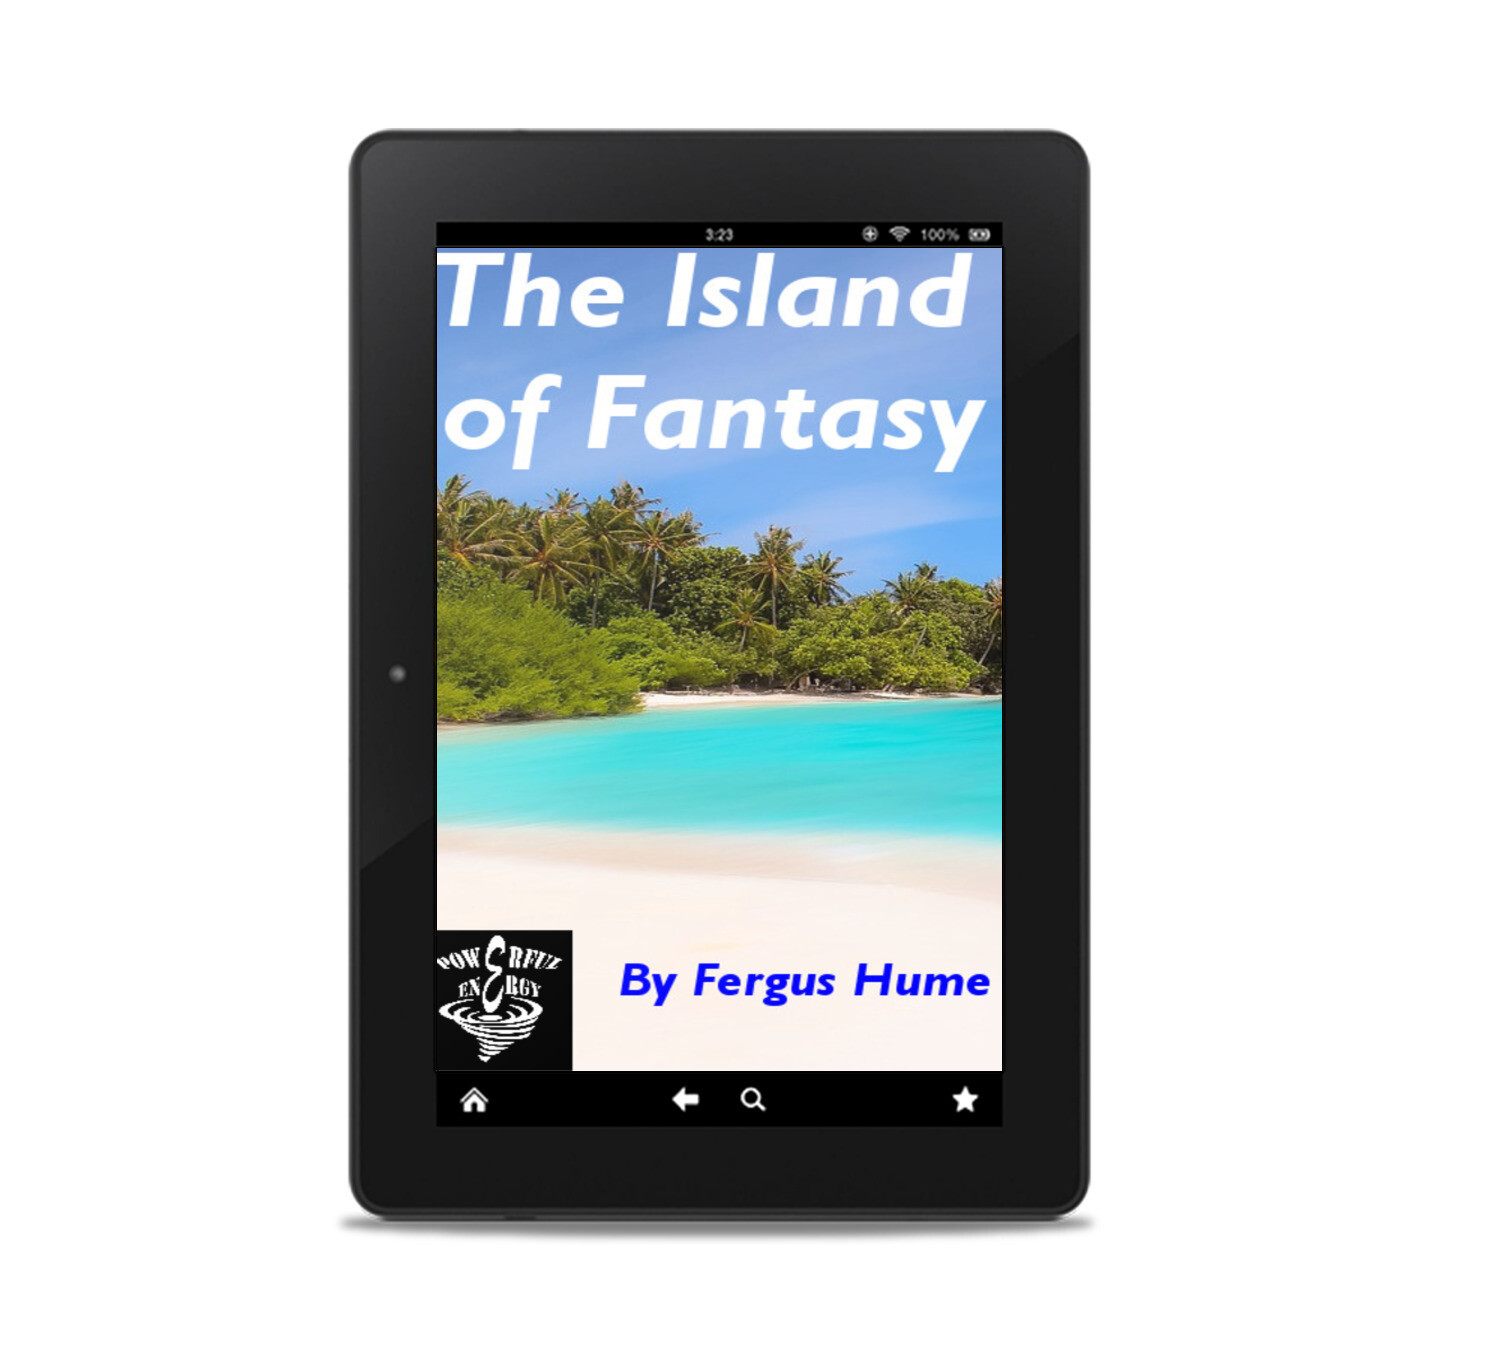 The Island of Fantasy, by Fergus Hume